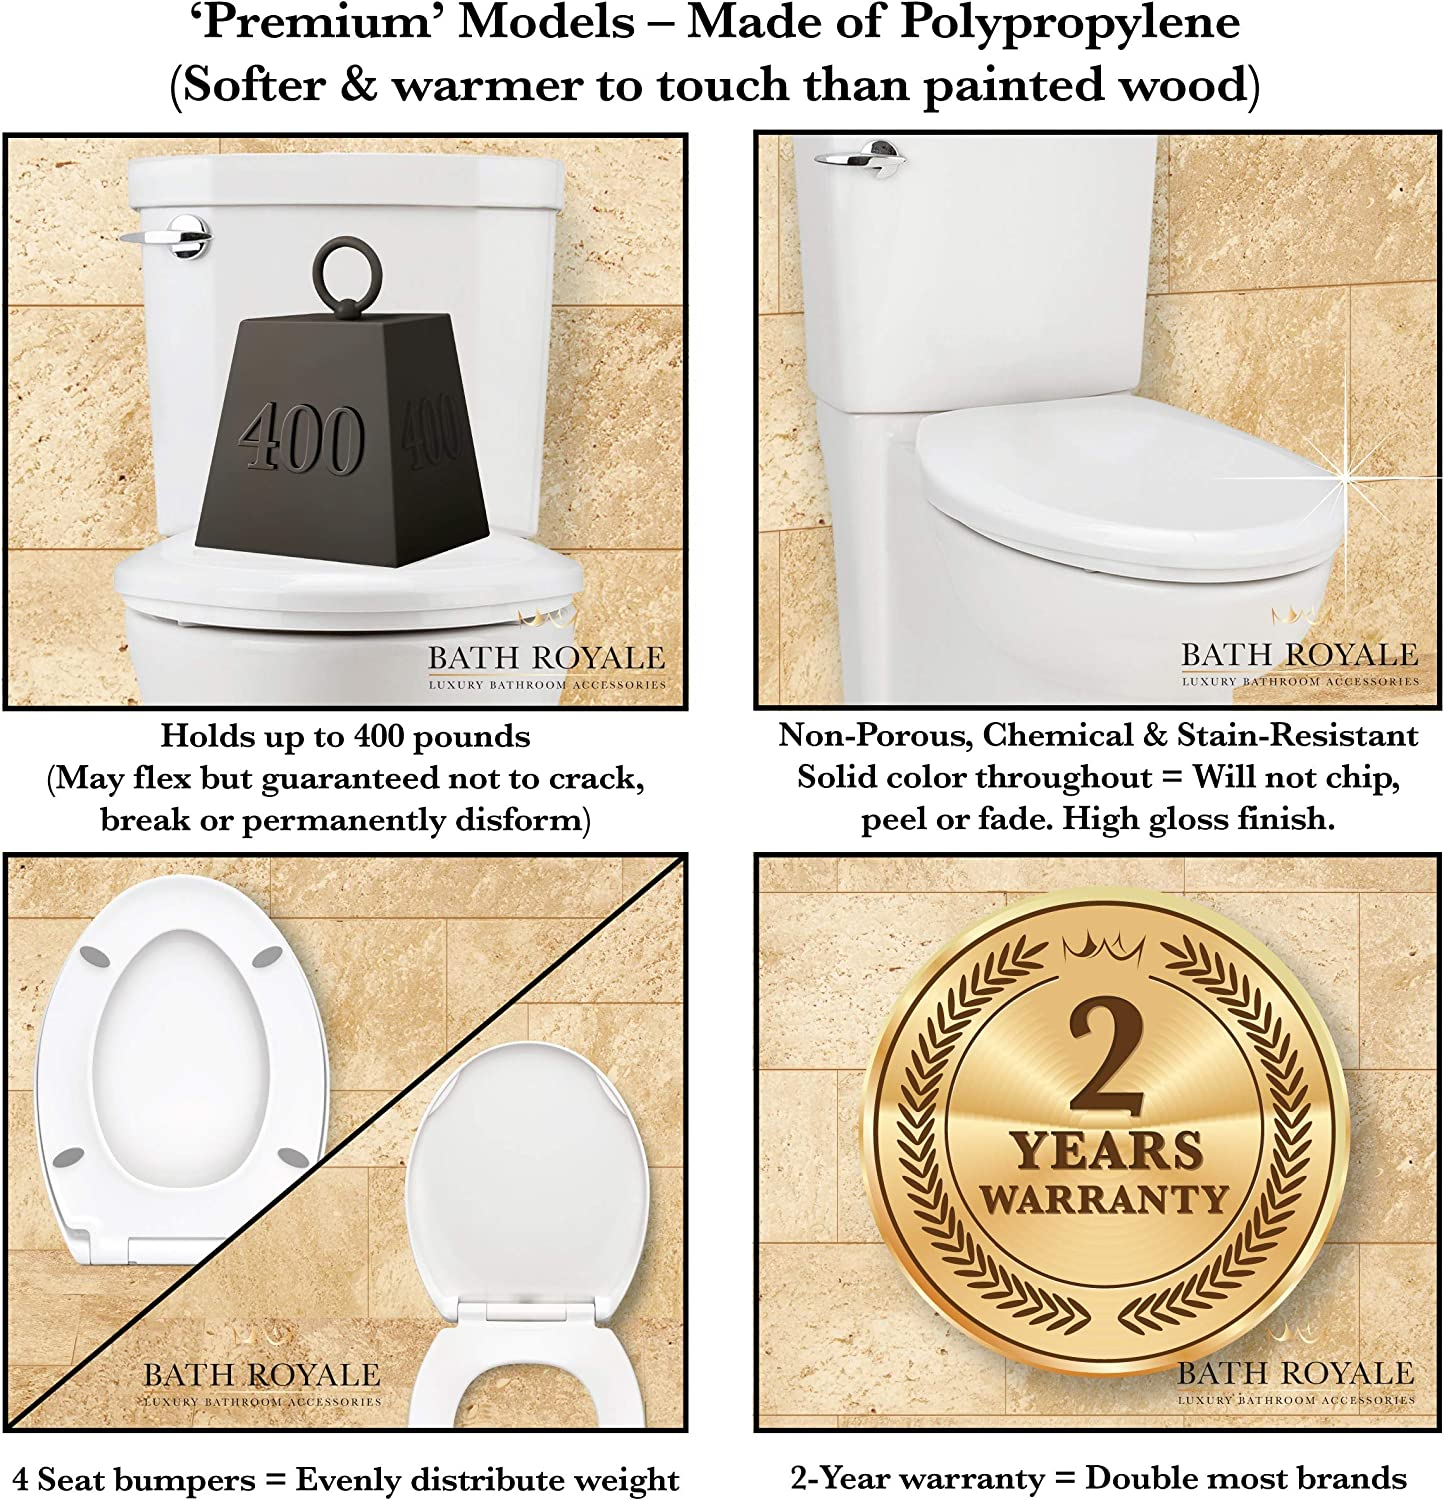 Bath Royale Premium Round Toilet Seat W Cover Slow Close Quick Clean High Gloss Polypropylene Lasts Longer More Comfortable And Sanitary Than Wood Seats Fits All Brands Including Kohler American Standard And